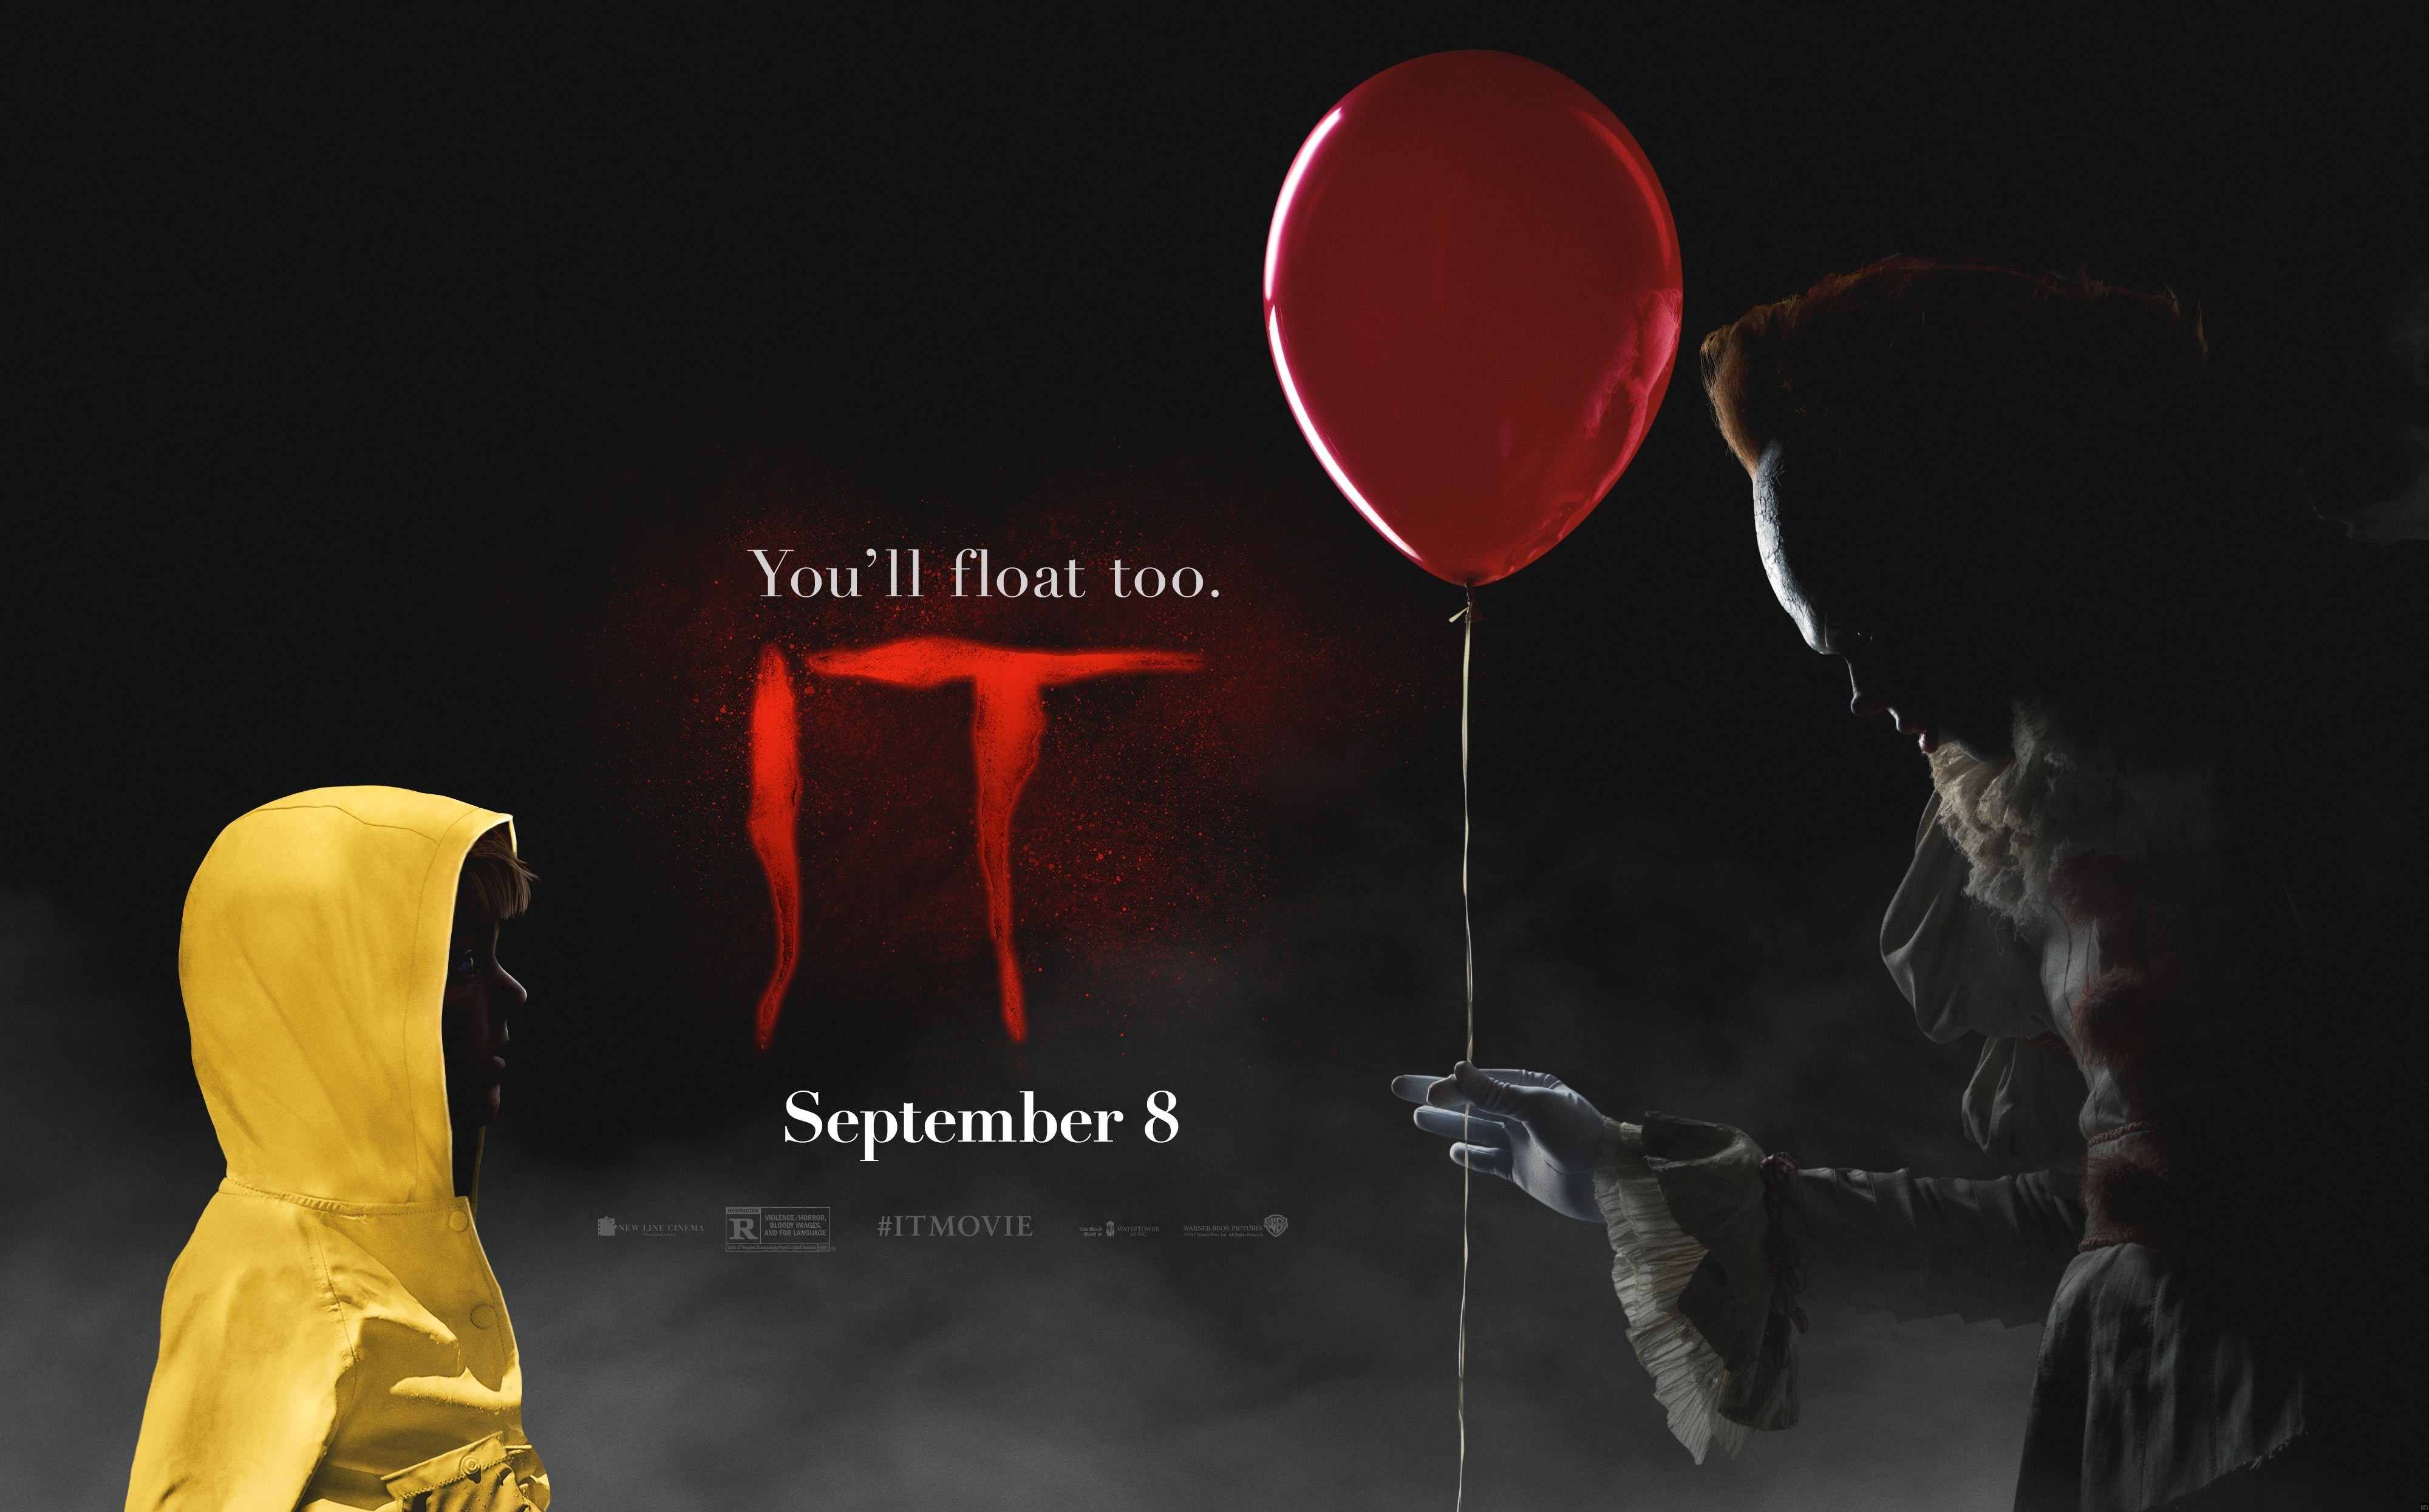 New IT Poster